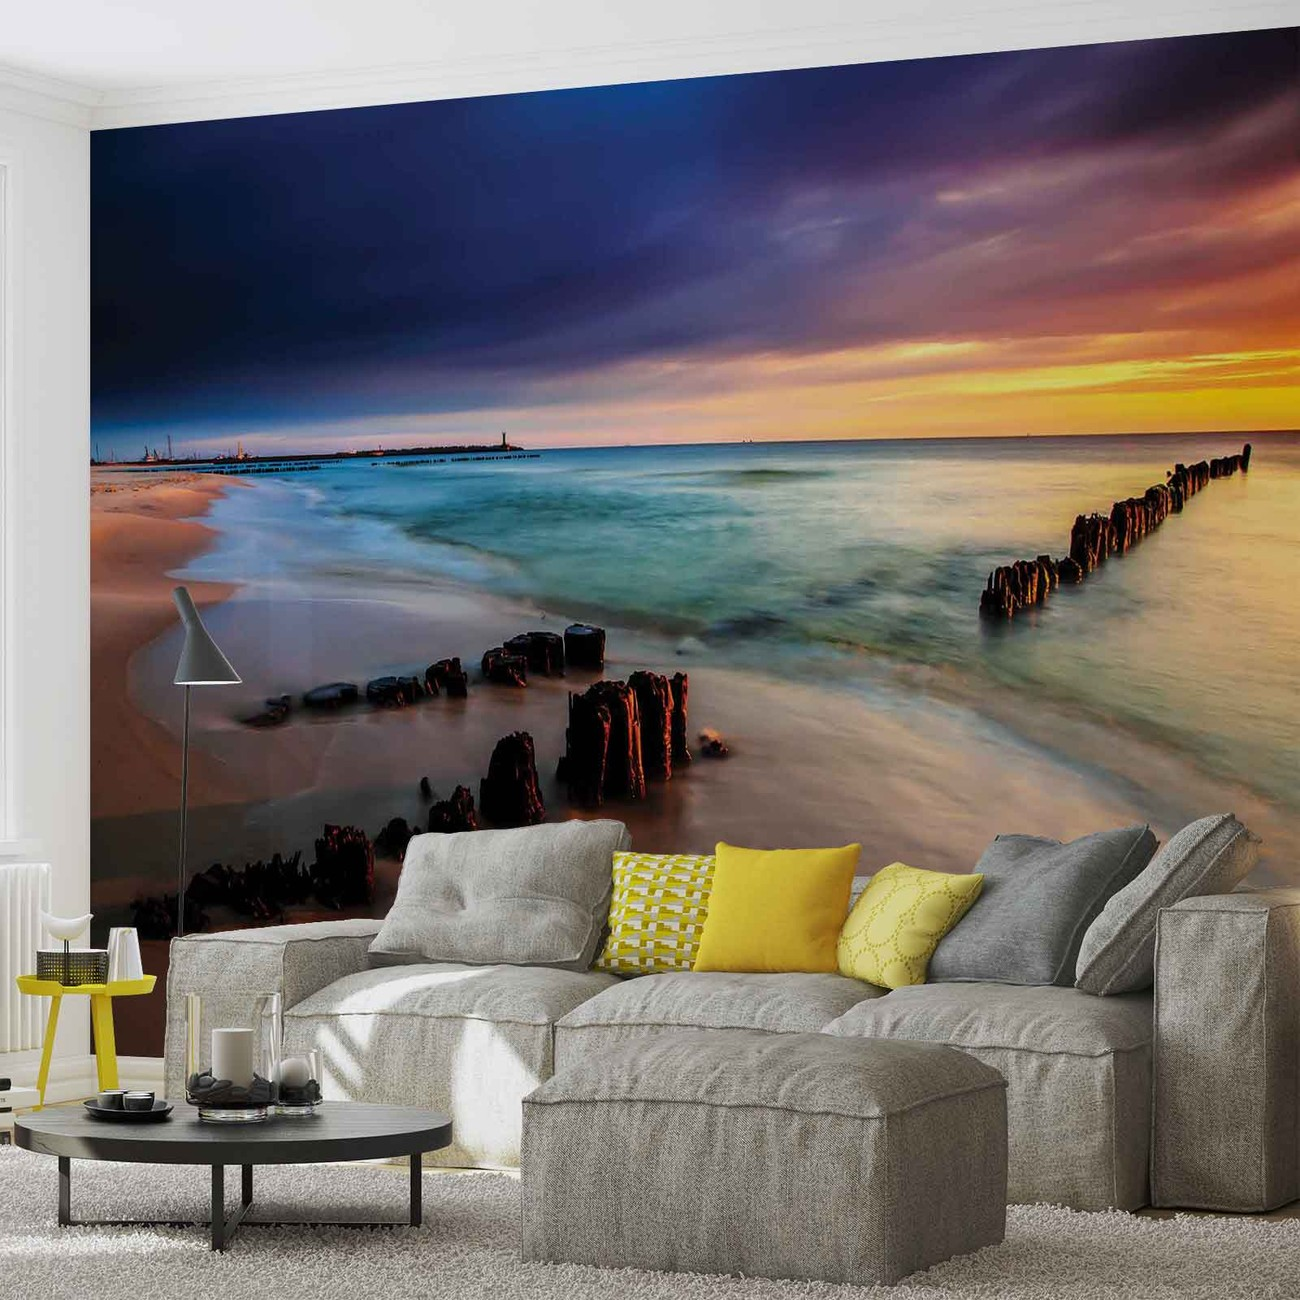 Beach scene wall paper mural buy at europosters for Wall scenes